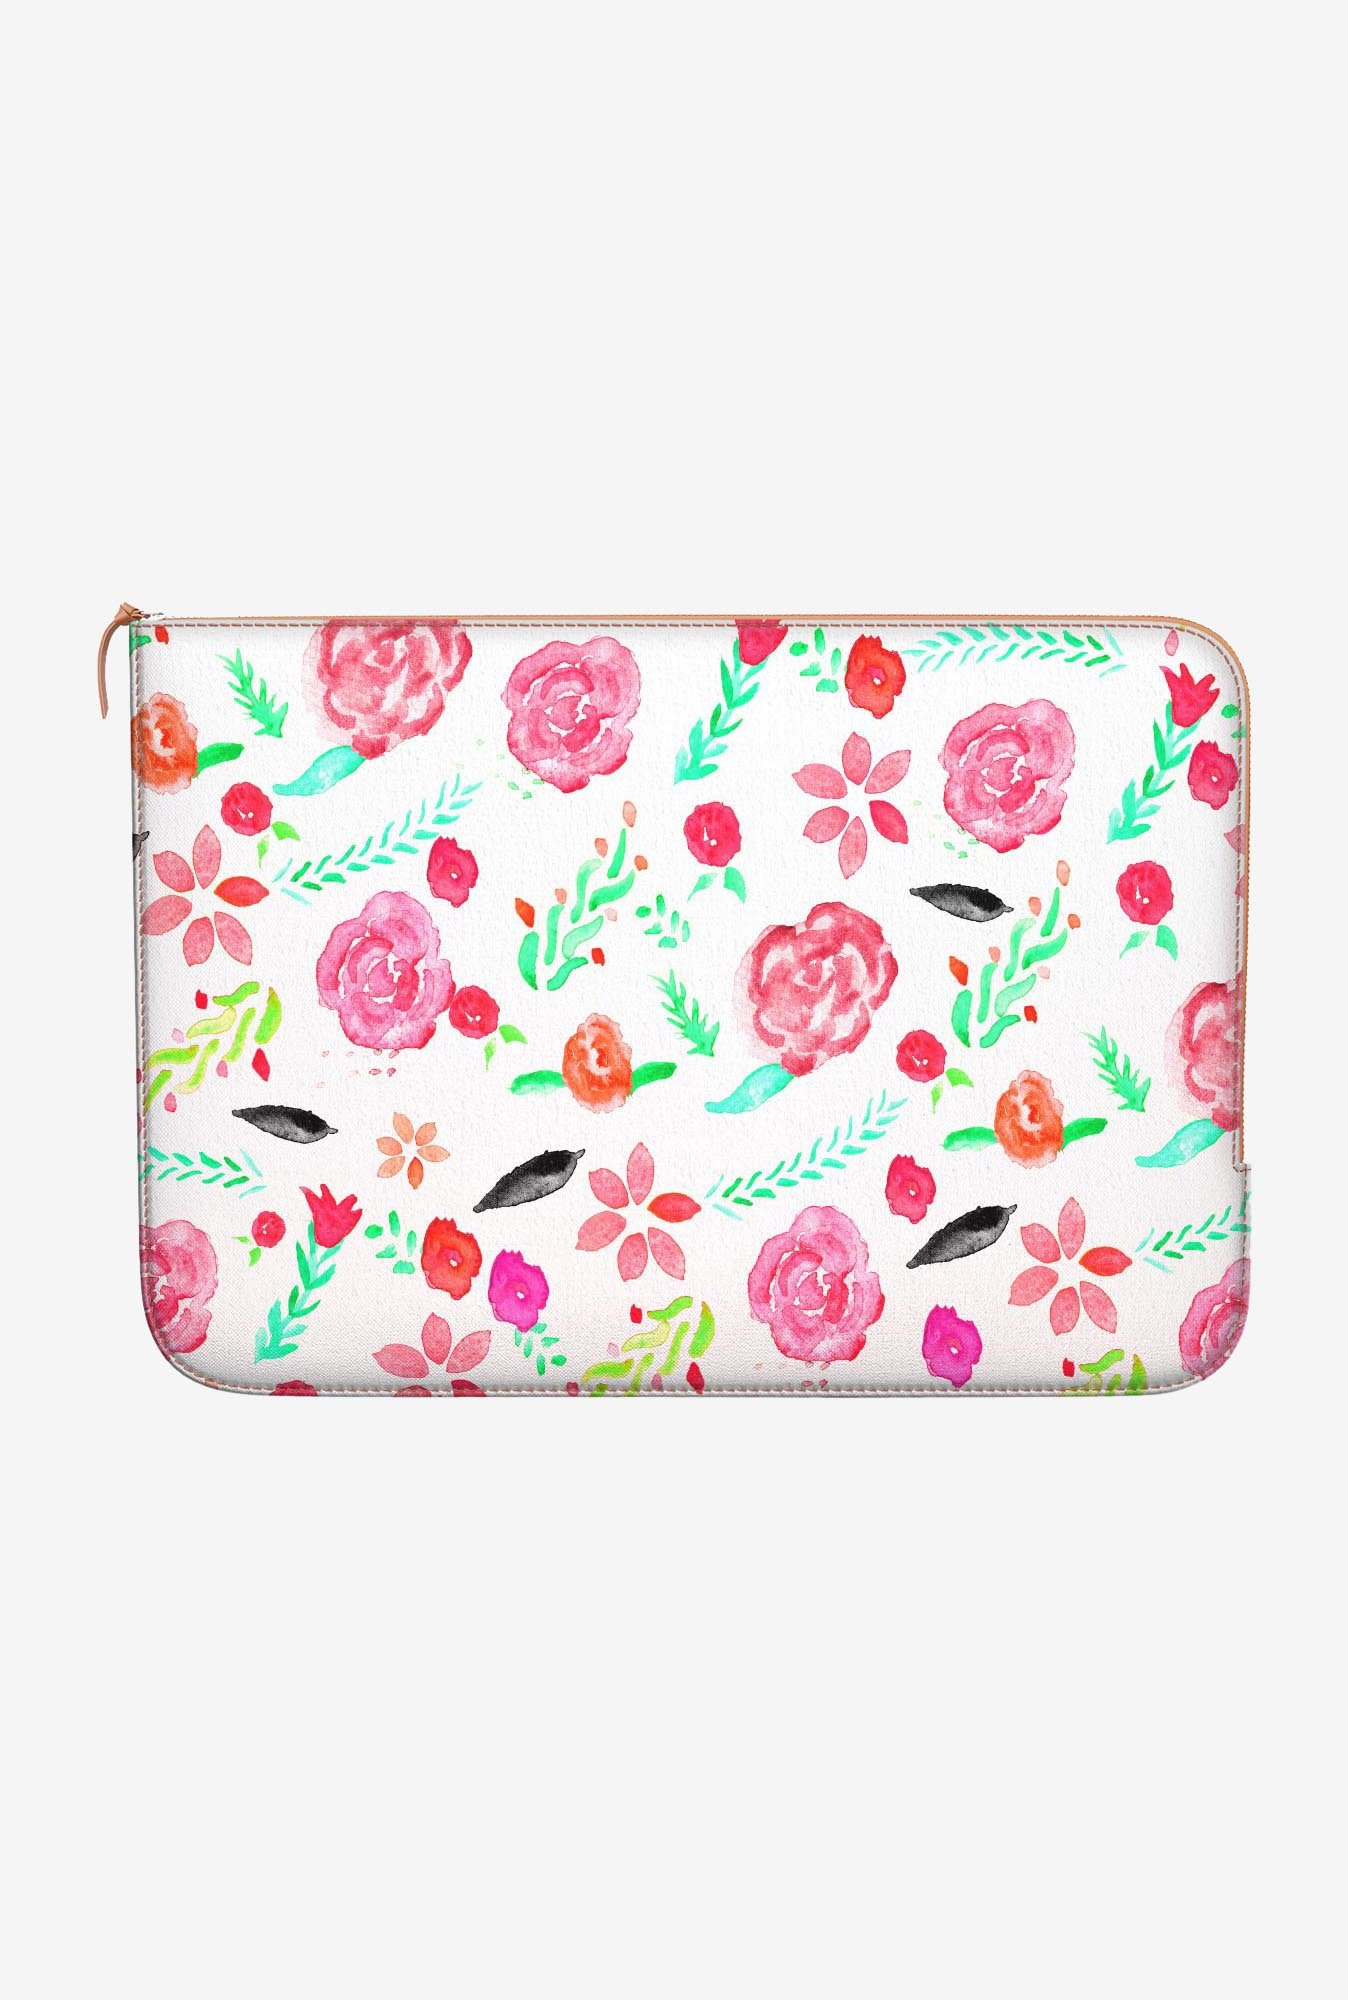 DailyObjects Floral Botanical MacBook Air 13 Zippered Sleeve